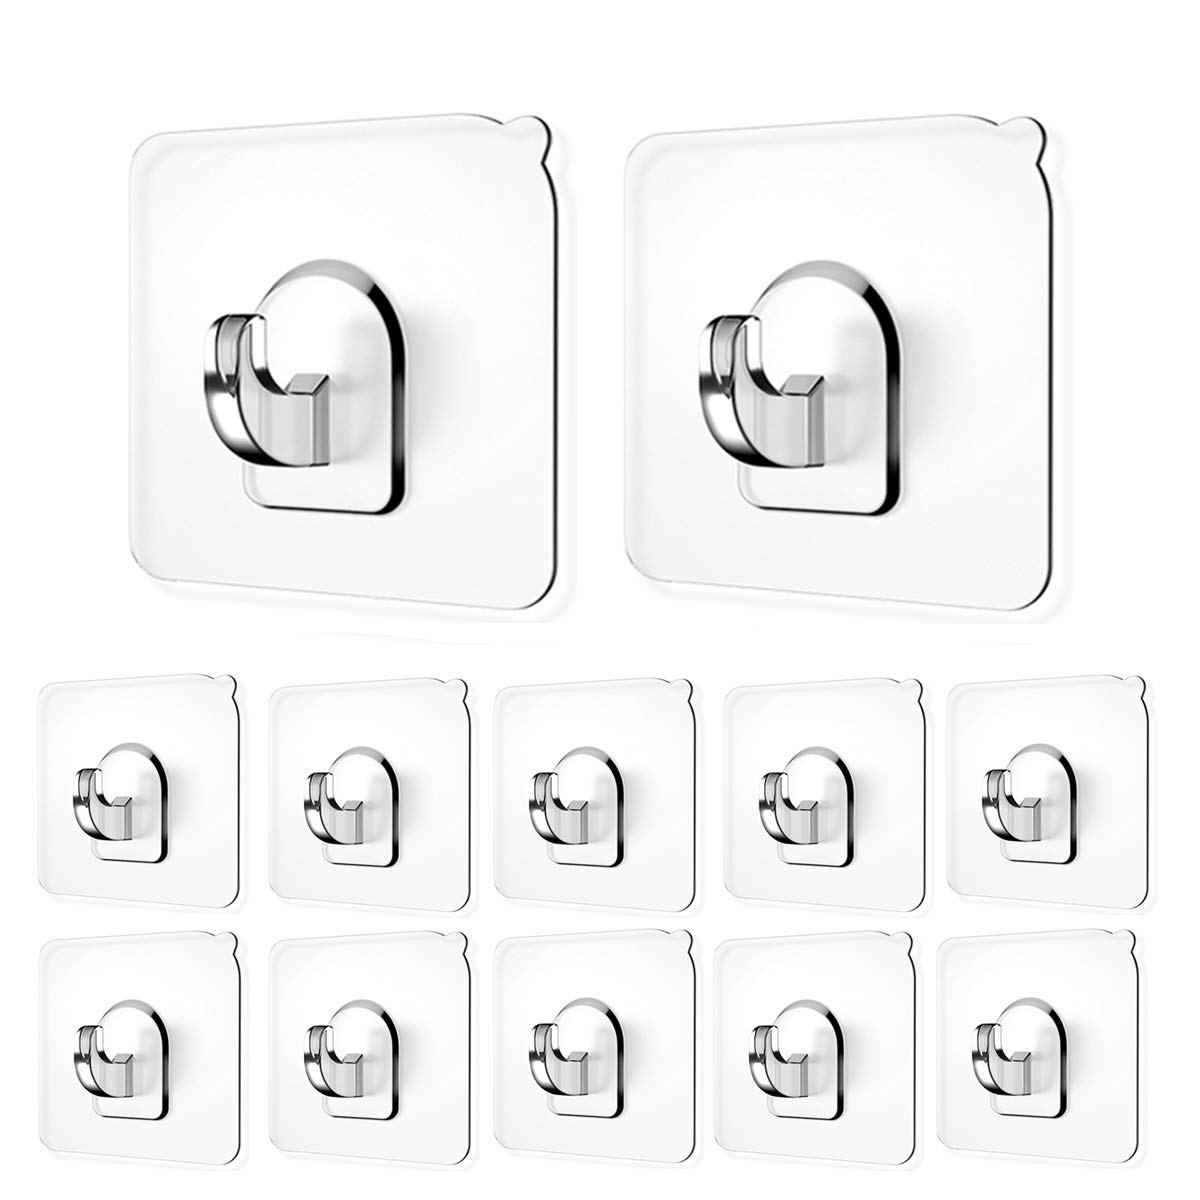 Ninth Five Adhesive Hooks(13.2lb/6kg) Sticky Wall Hooks Transparent Plastic Reusable Heavy Duty Hook for Kitchen Bathroom Office No Trace No Scratch Waterproof and Oilproof (12 Pack)